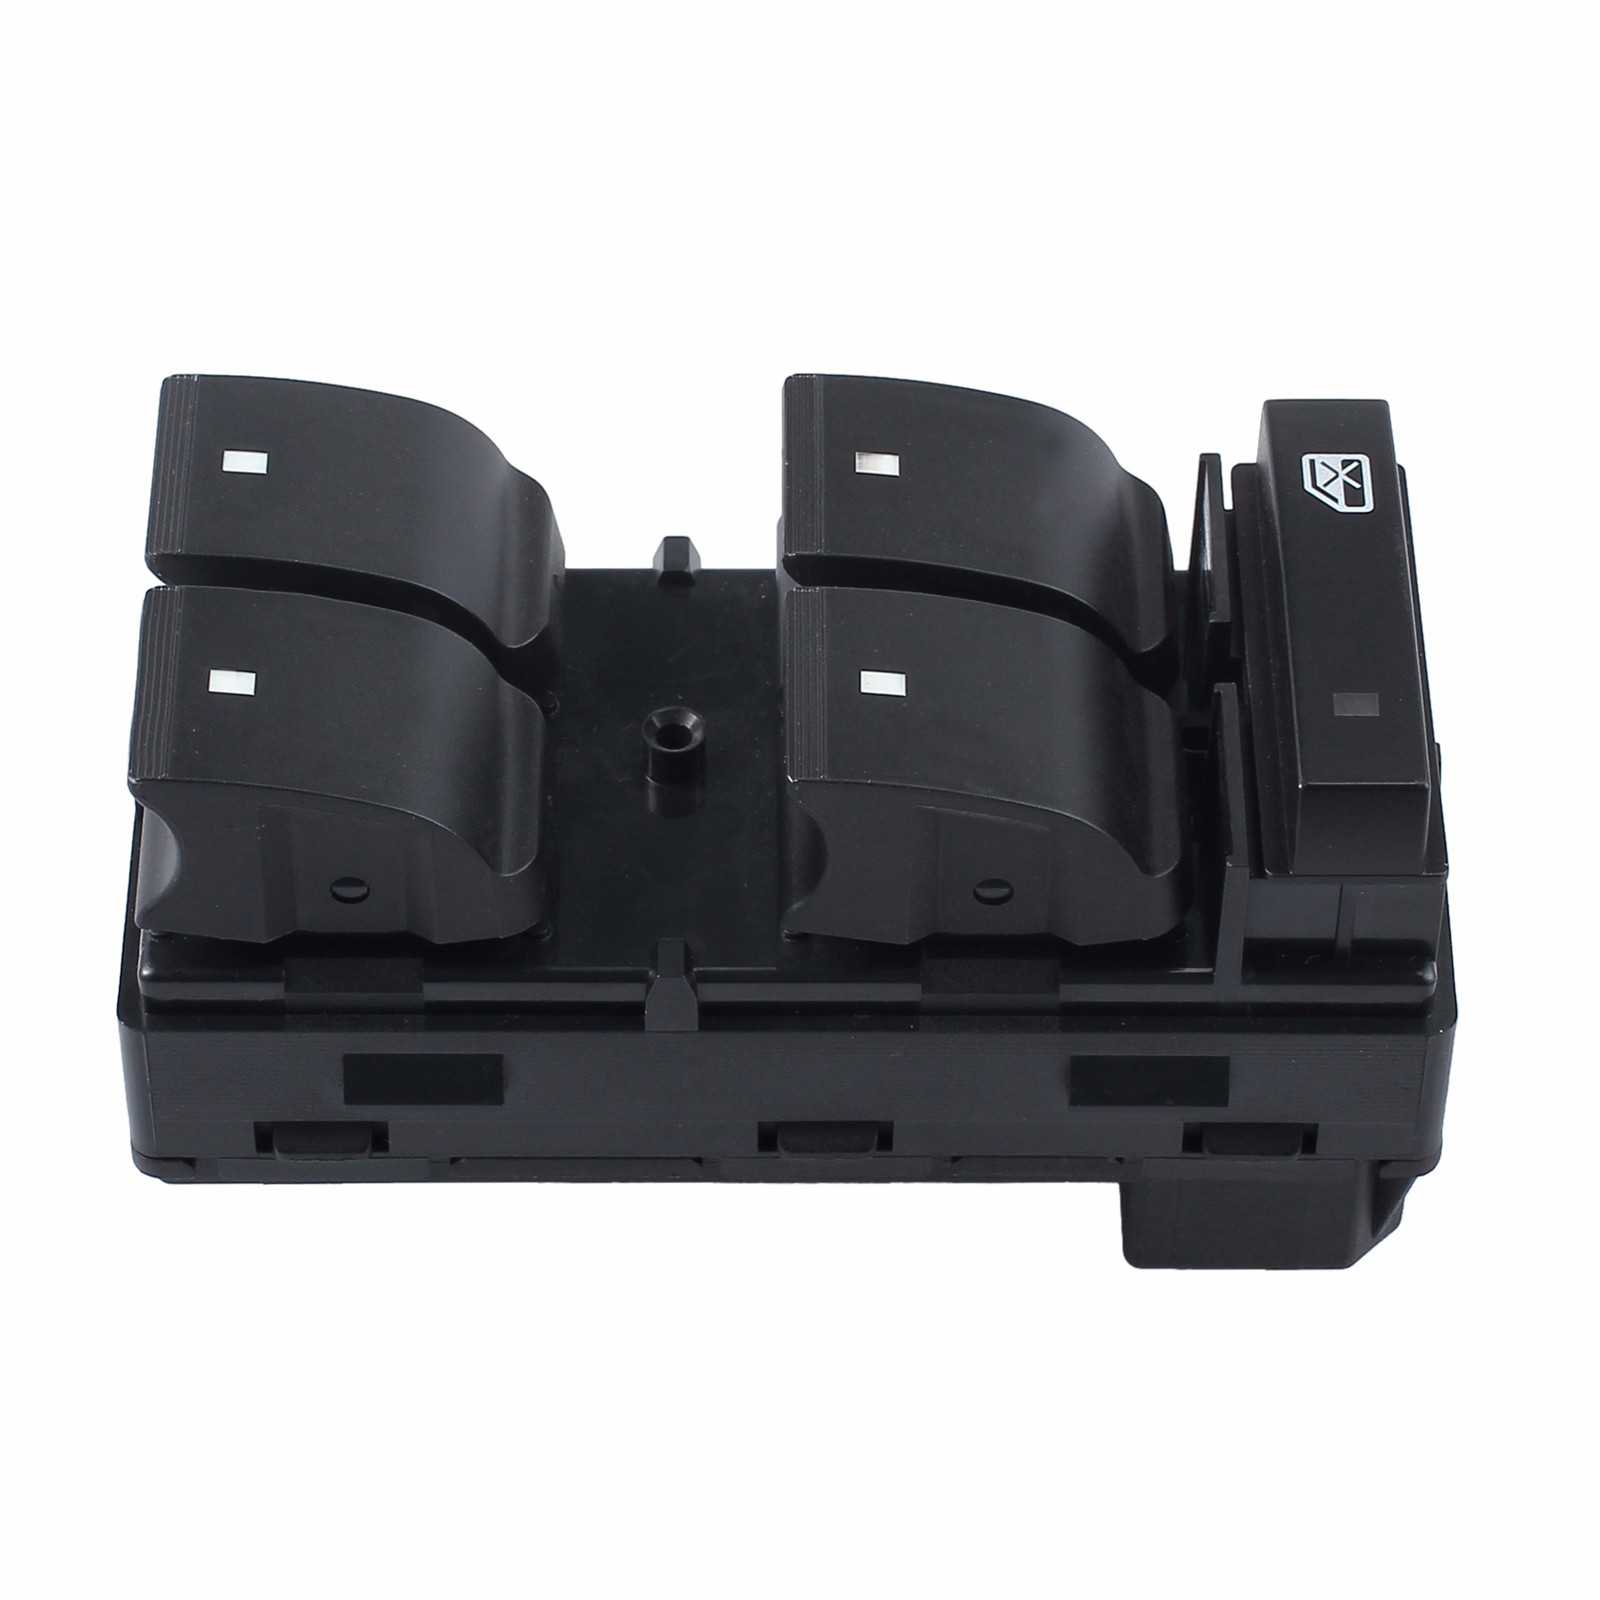 ESYNIC Auto Car Electric Power Window Master Switch OEM 20945129 for Chevrolet Traverse HHR Buick Enclave  sc 1 st  Walmart : hhr door - pezcame.com